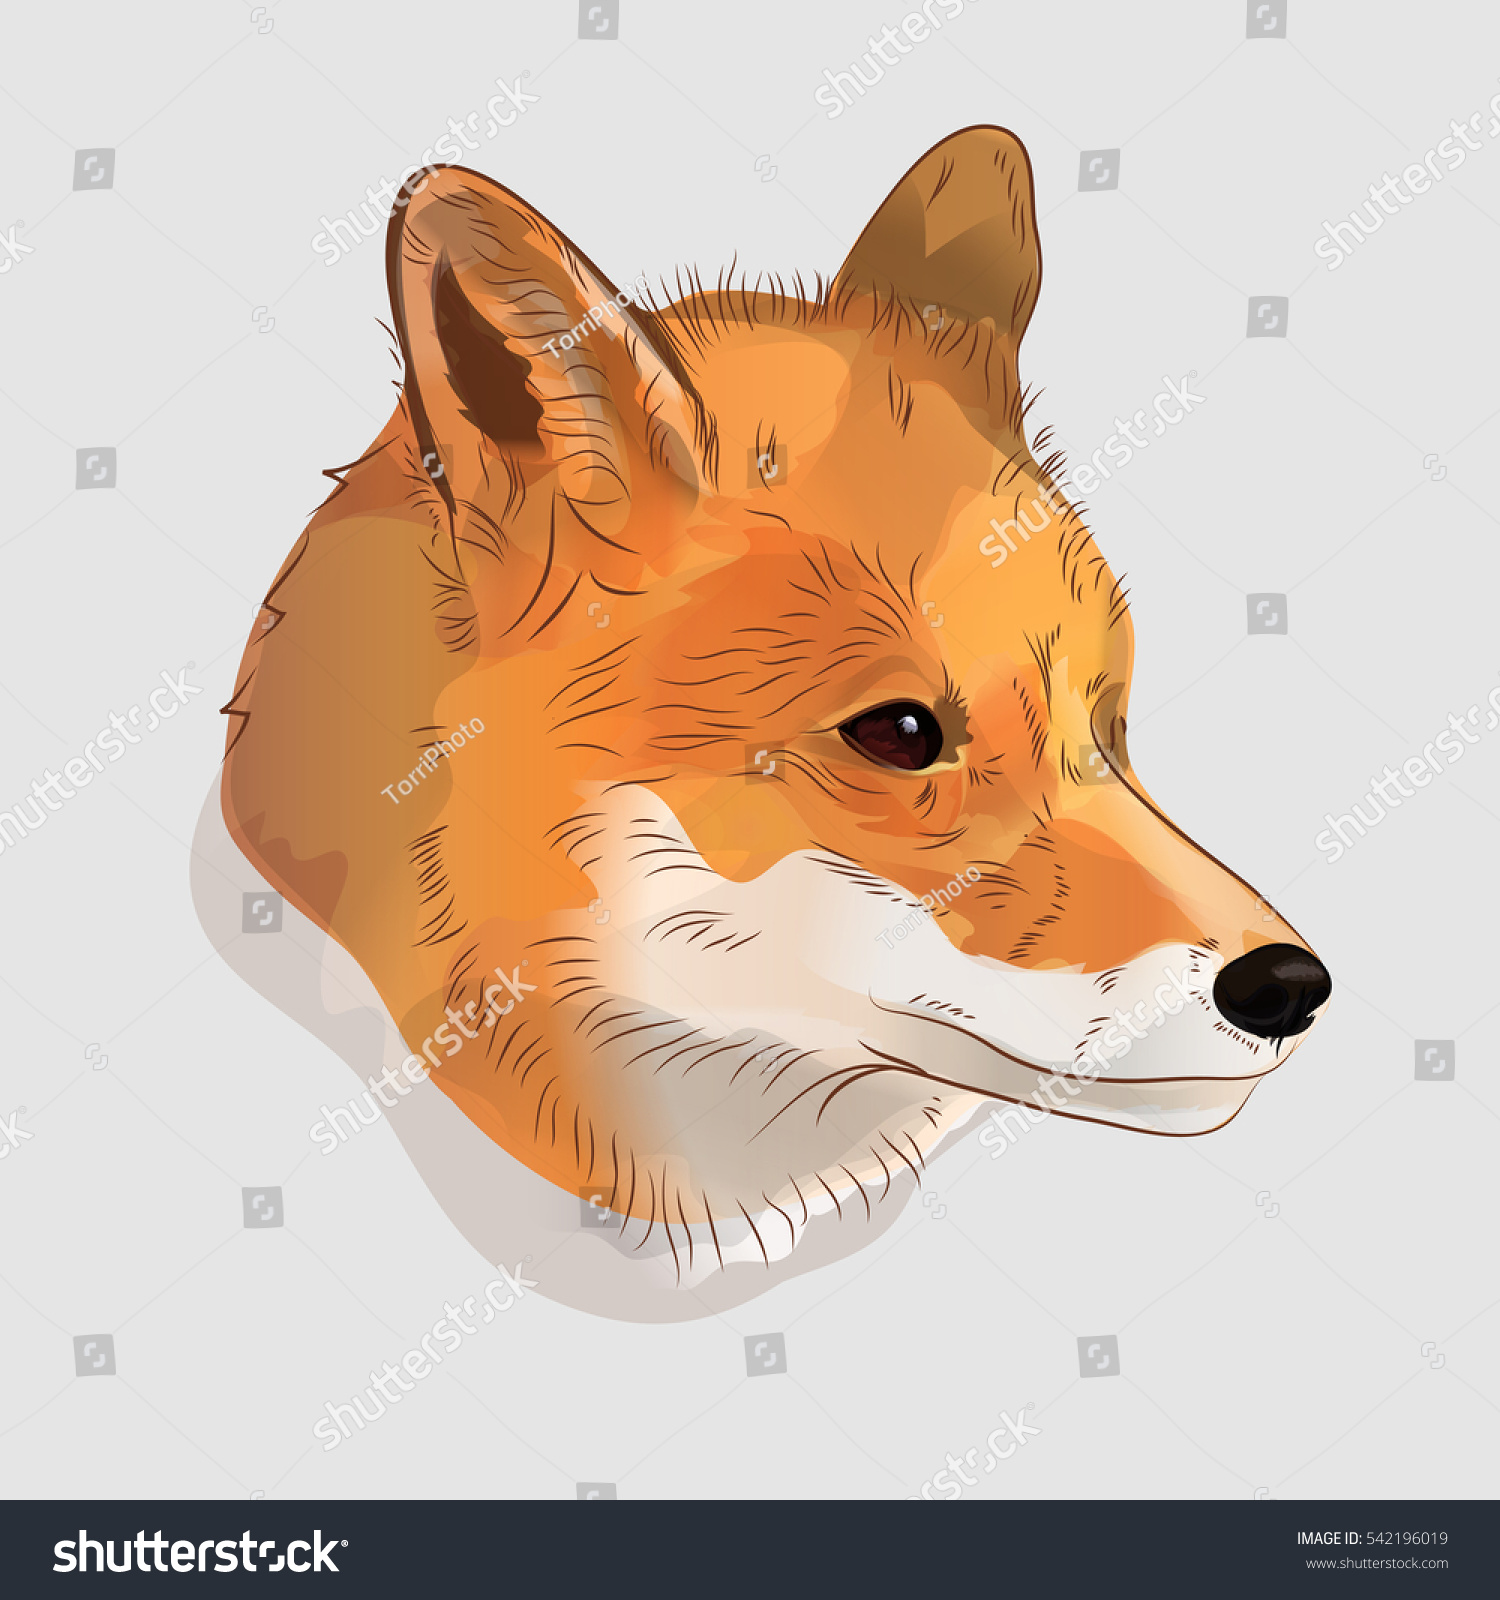 https://www.shutterstock.com/image-illustration/illustrative-portrait-red-fox-digital-illustration-542196019